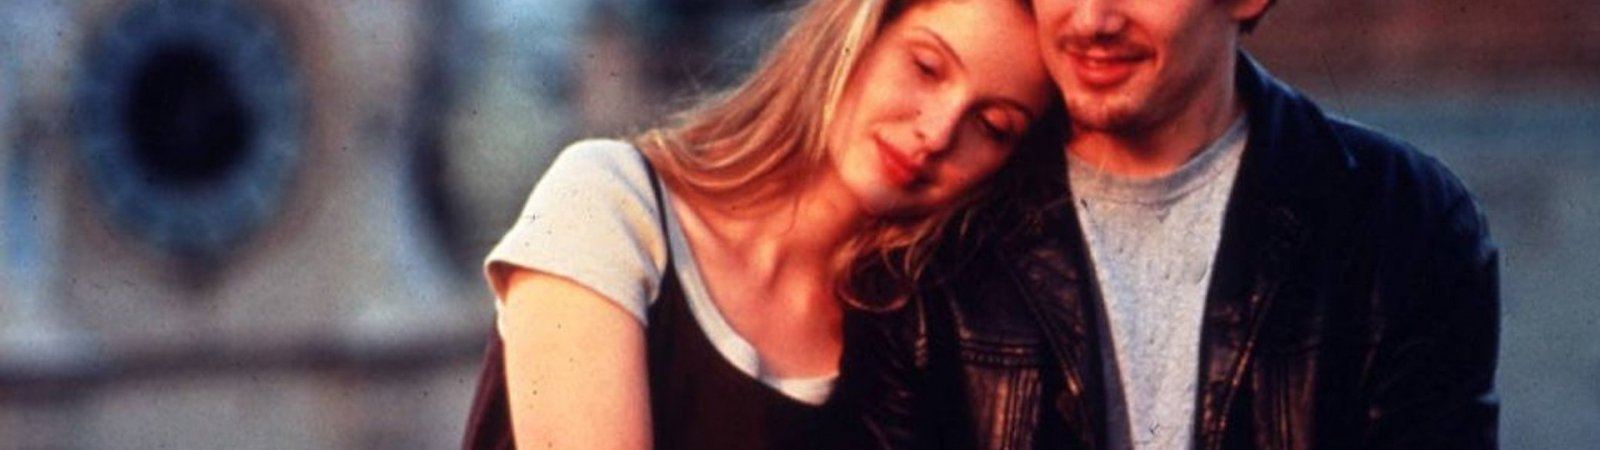 Photo du film : Before sunrise